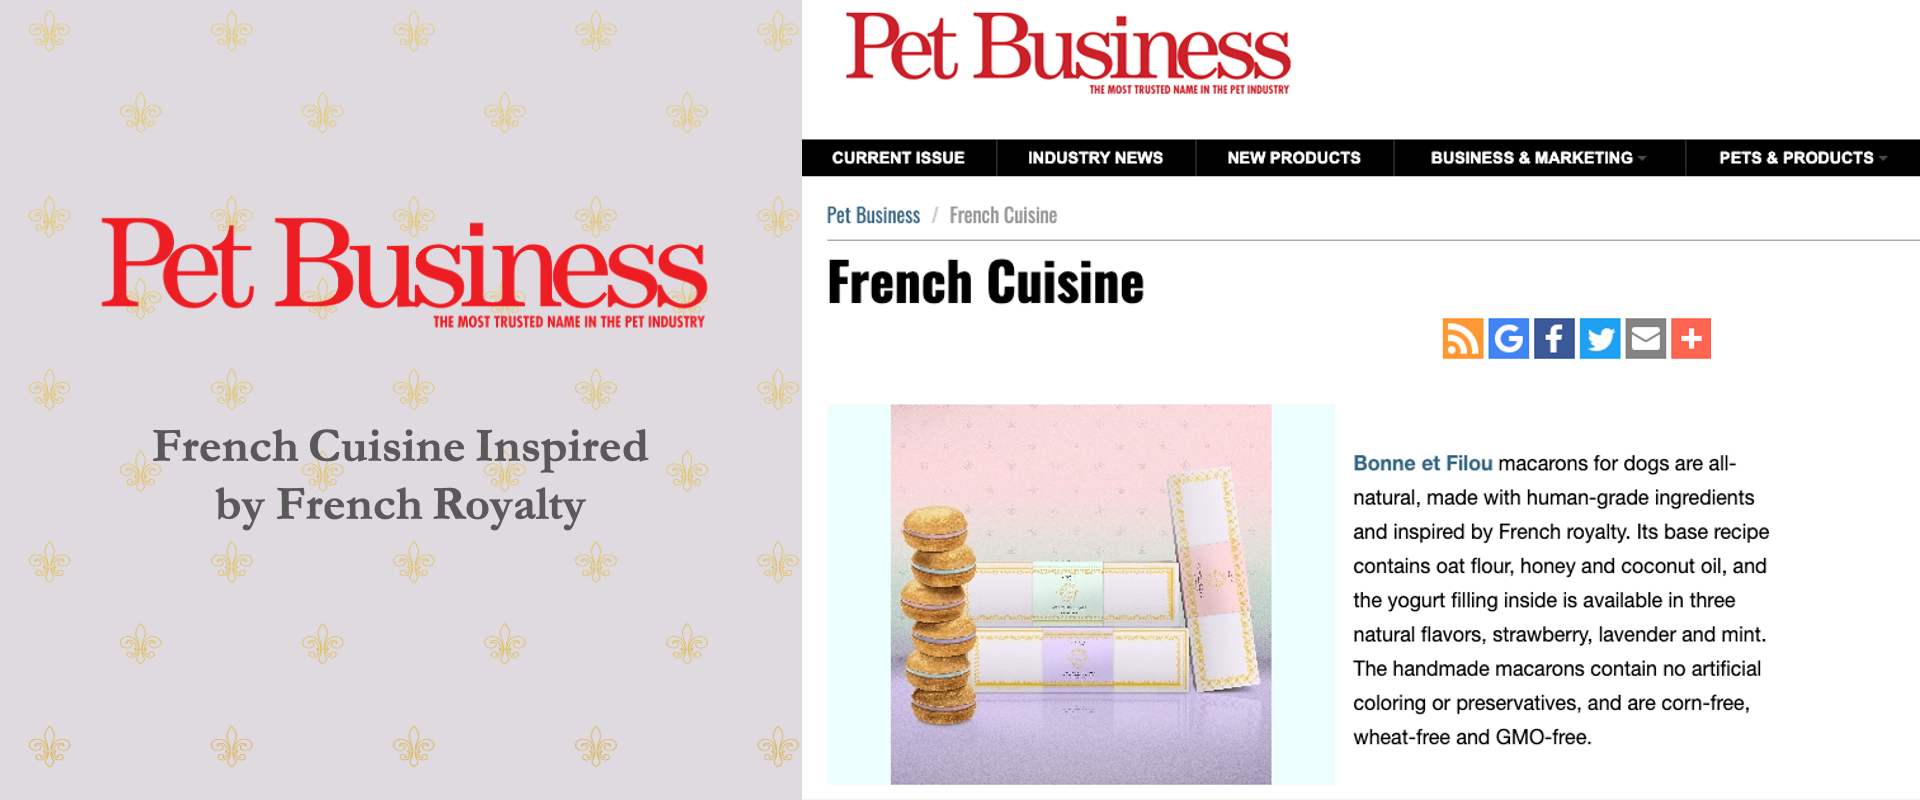 Pet Business French Cuisine Dog Macarons All-Natural Human-Grade Ingredients Treats French Royalty